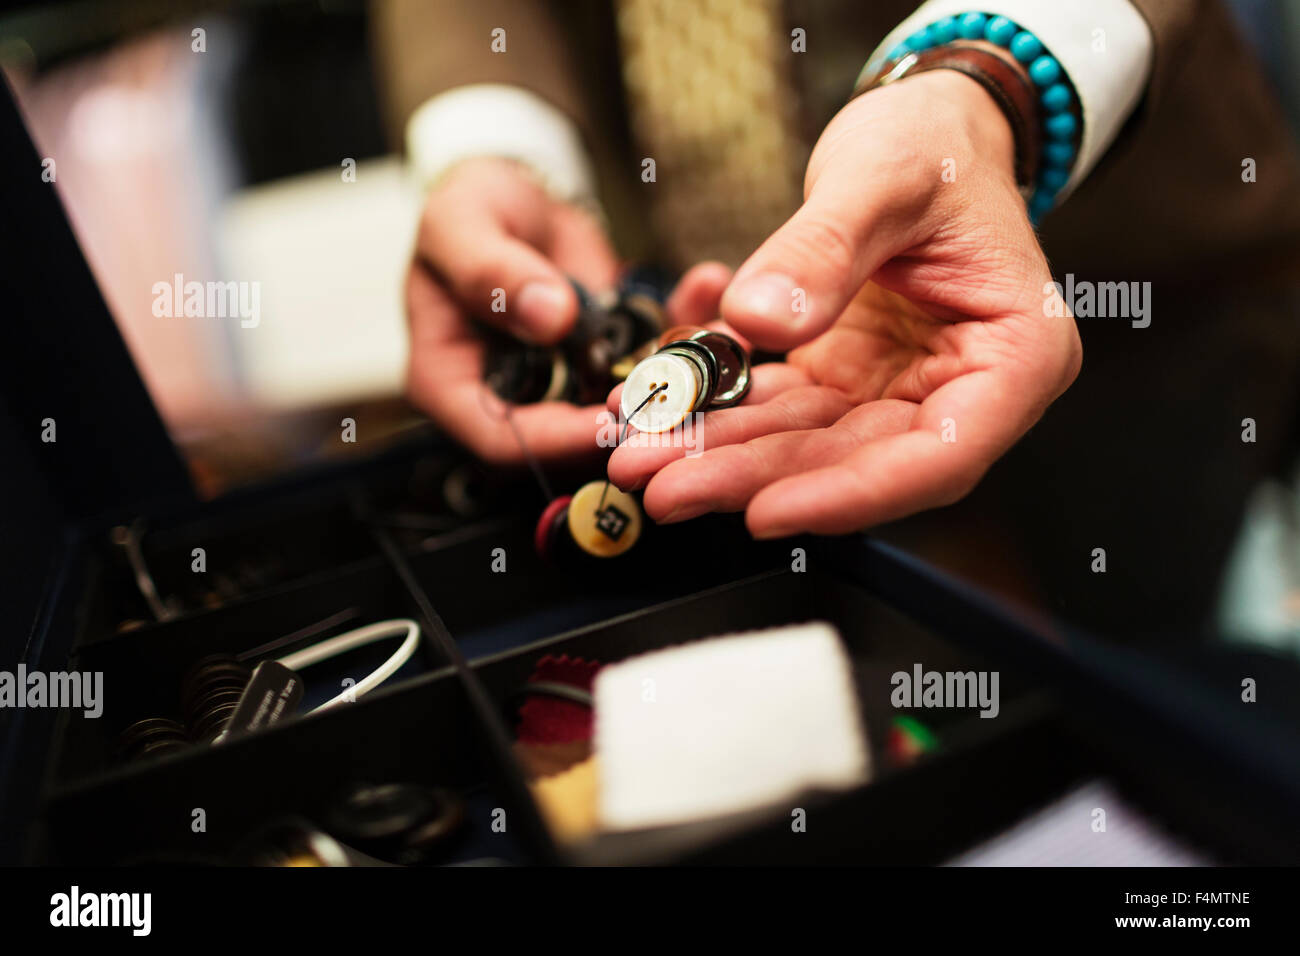 Close-up of fashion designer choosing buttons in drawer - Stock Image